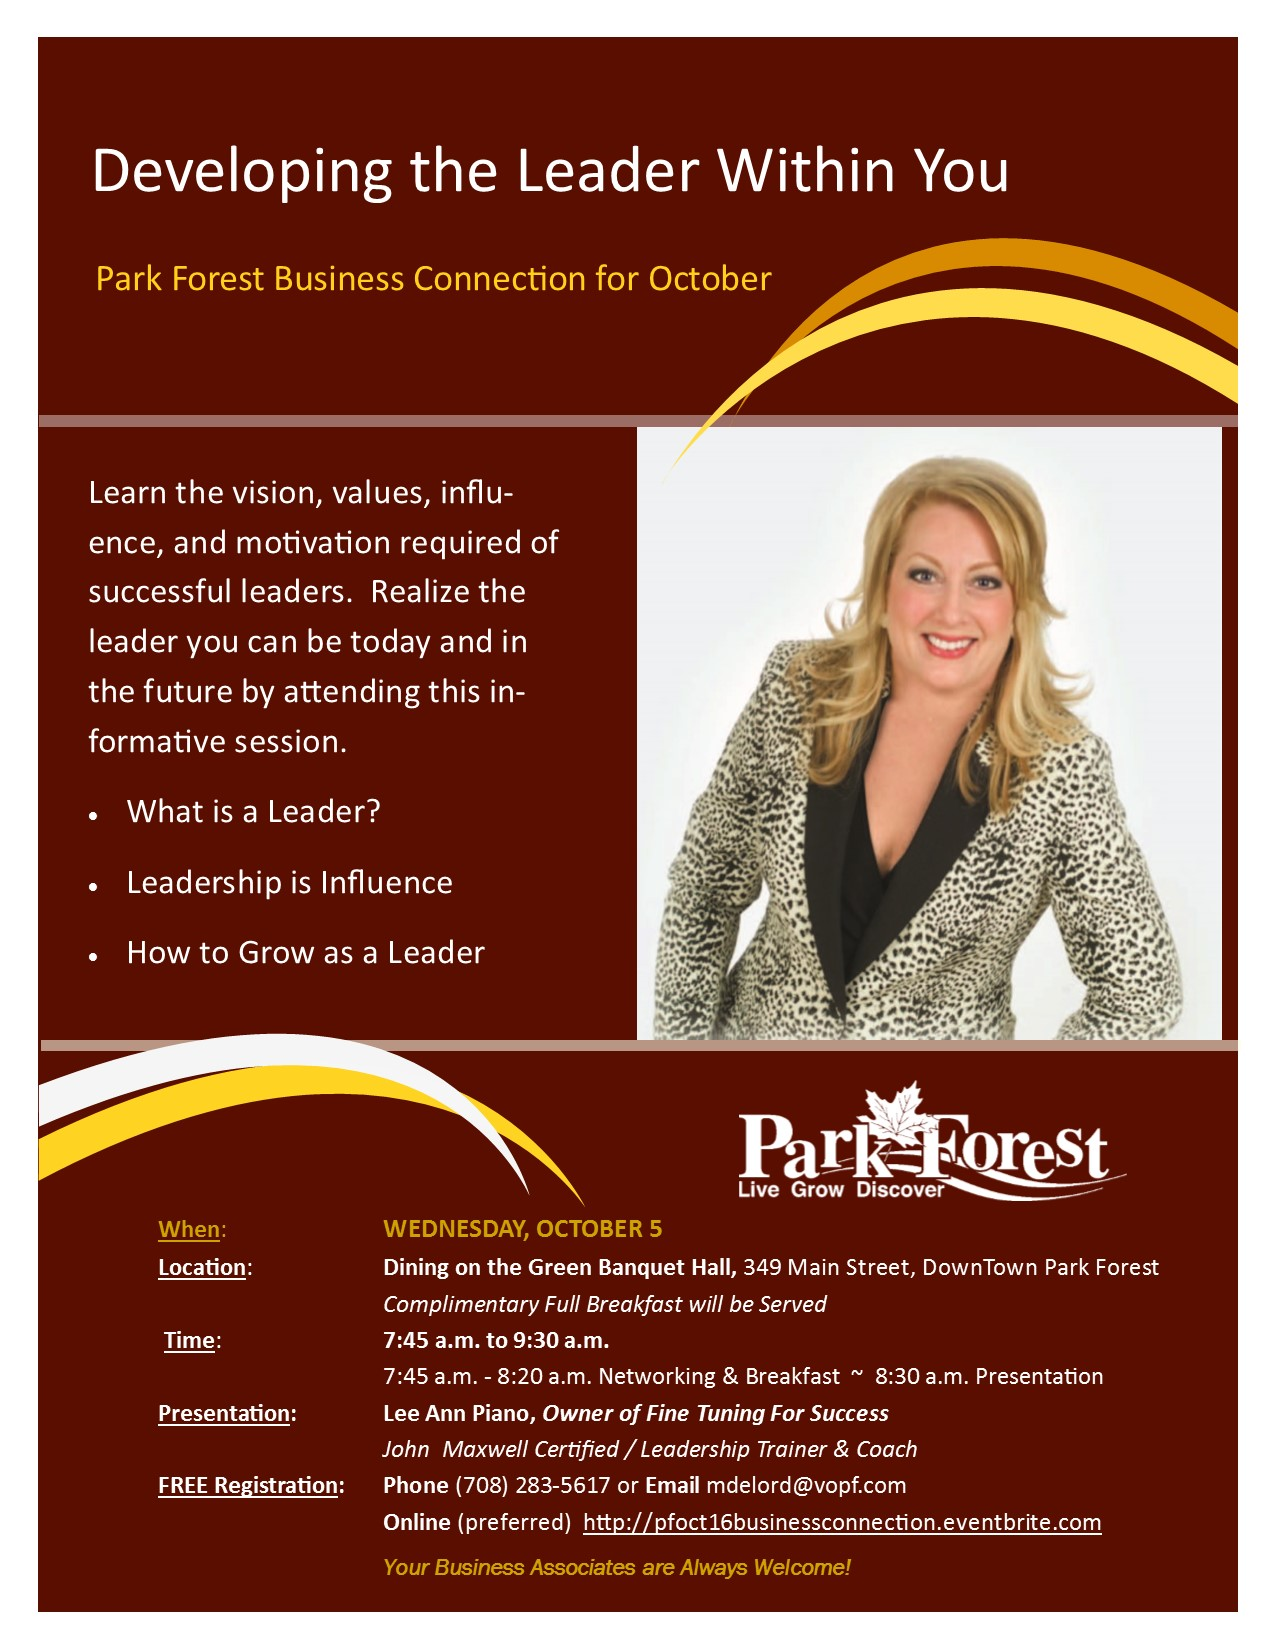 Park Forest Business Connection on Wednesday, October 5 'Developing the Leader Within You'